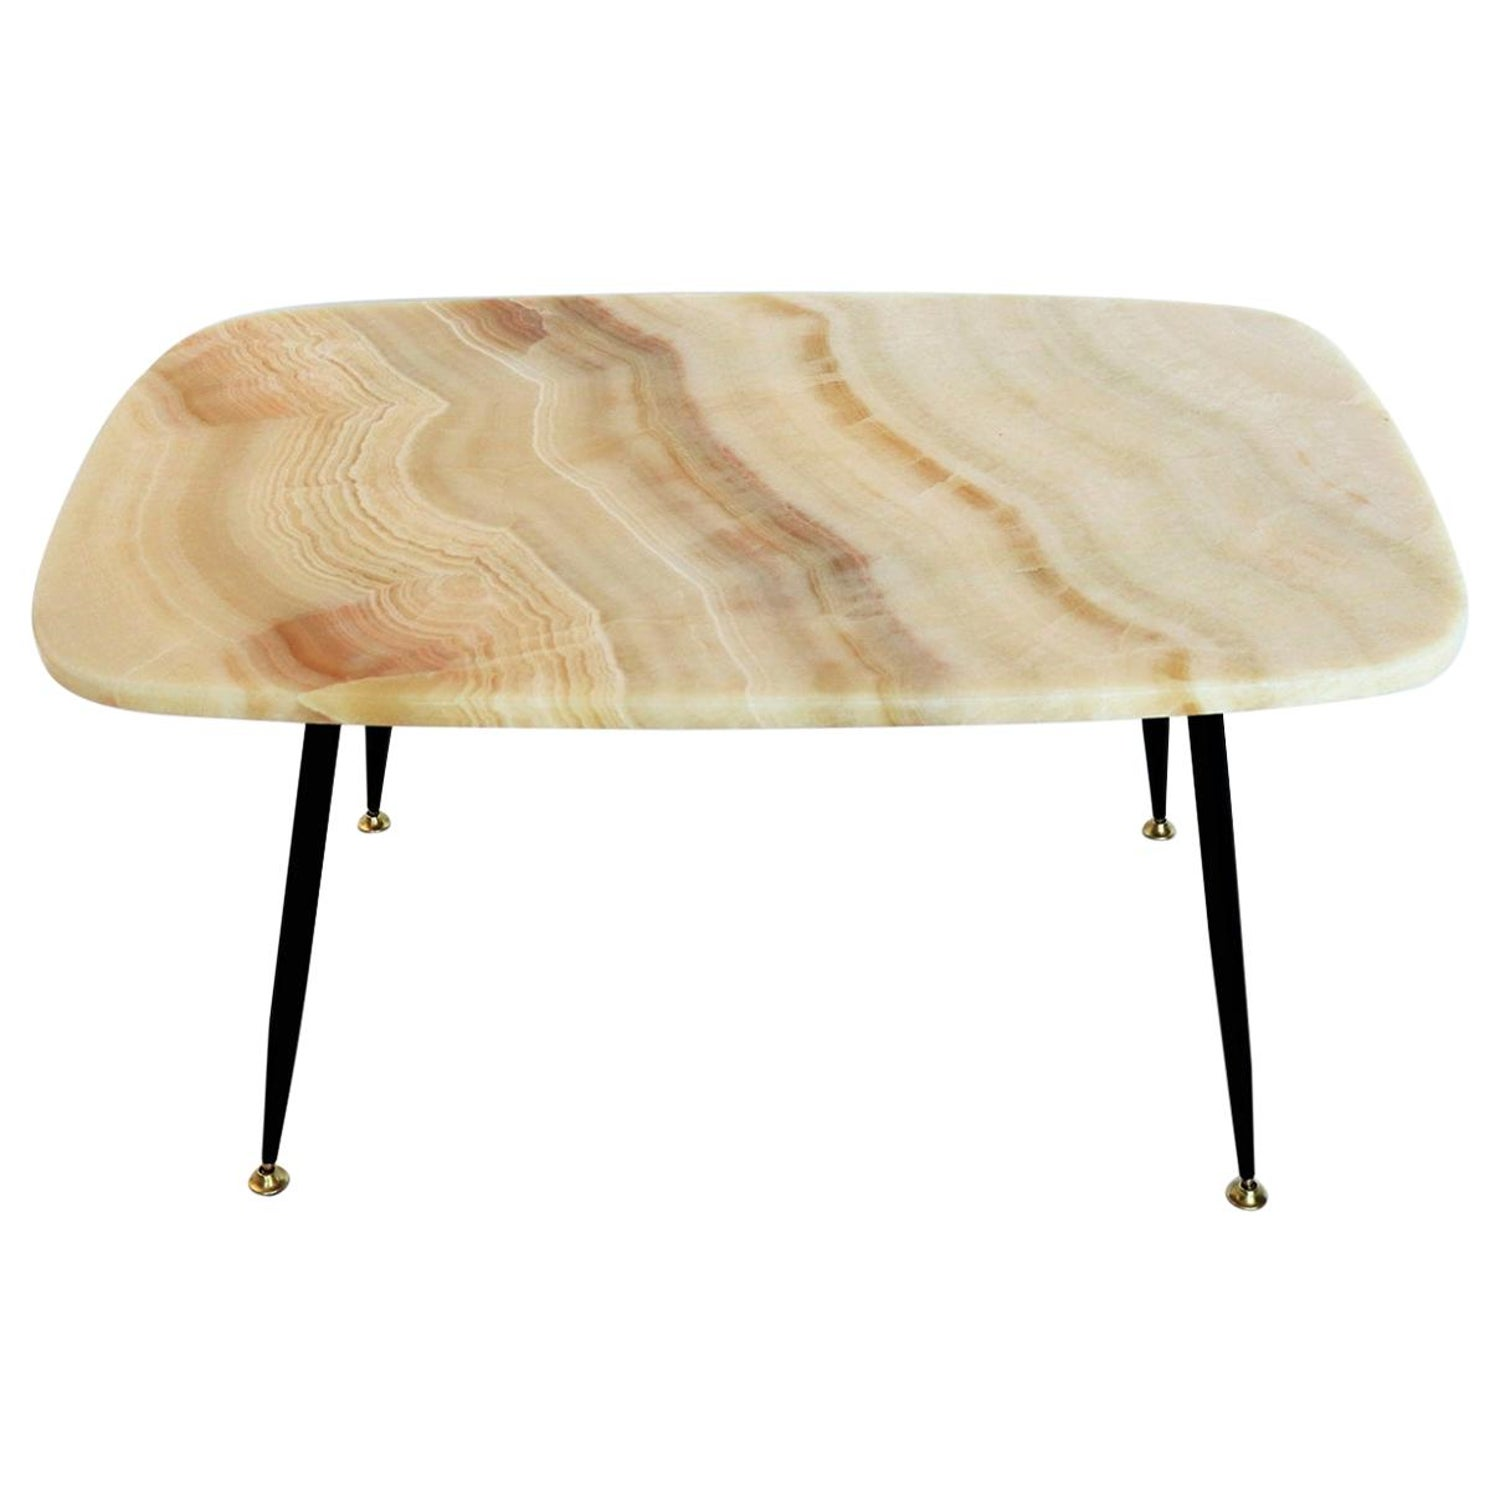 Italian Vintage Midcentury Pink Onyx Marble Coffee Table With